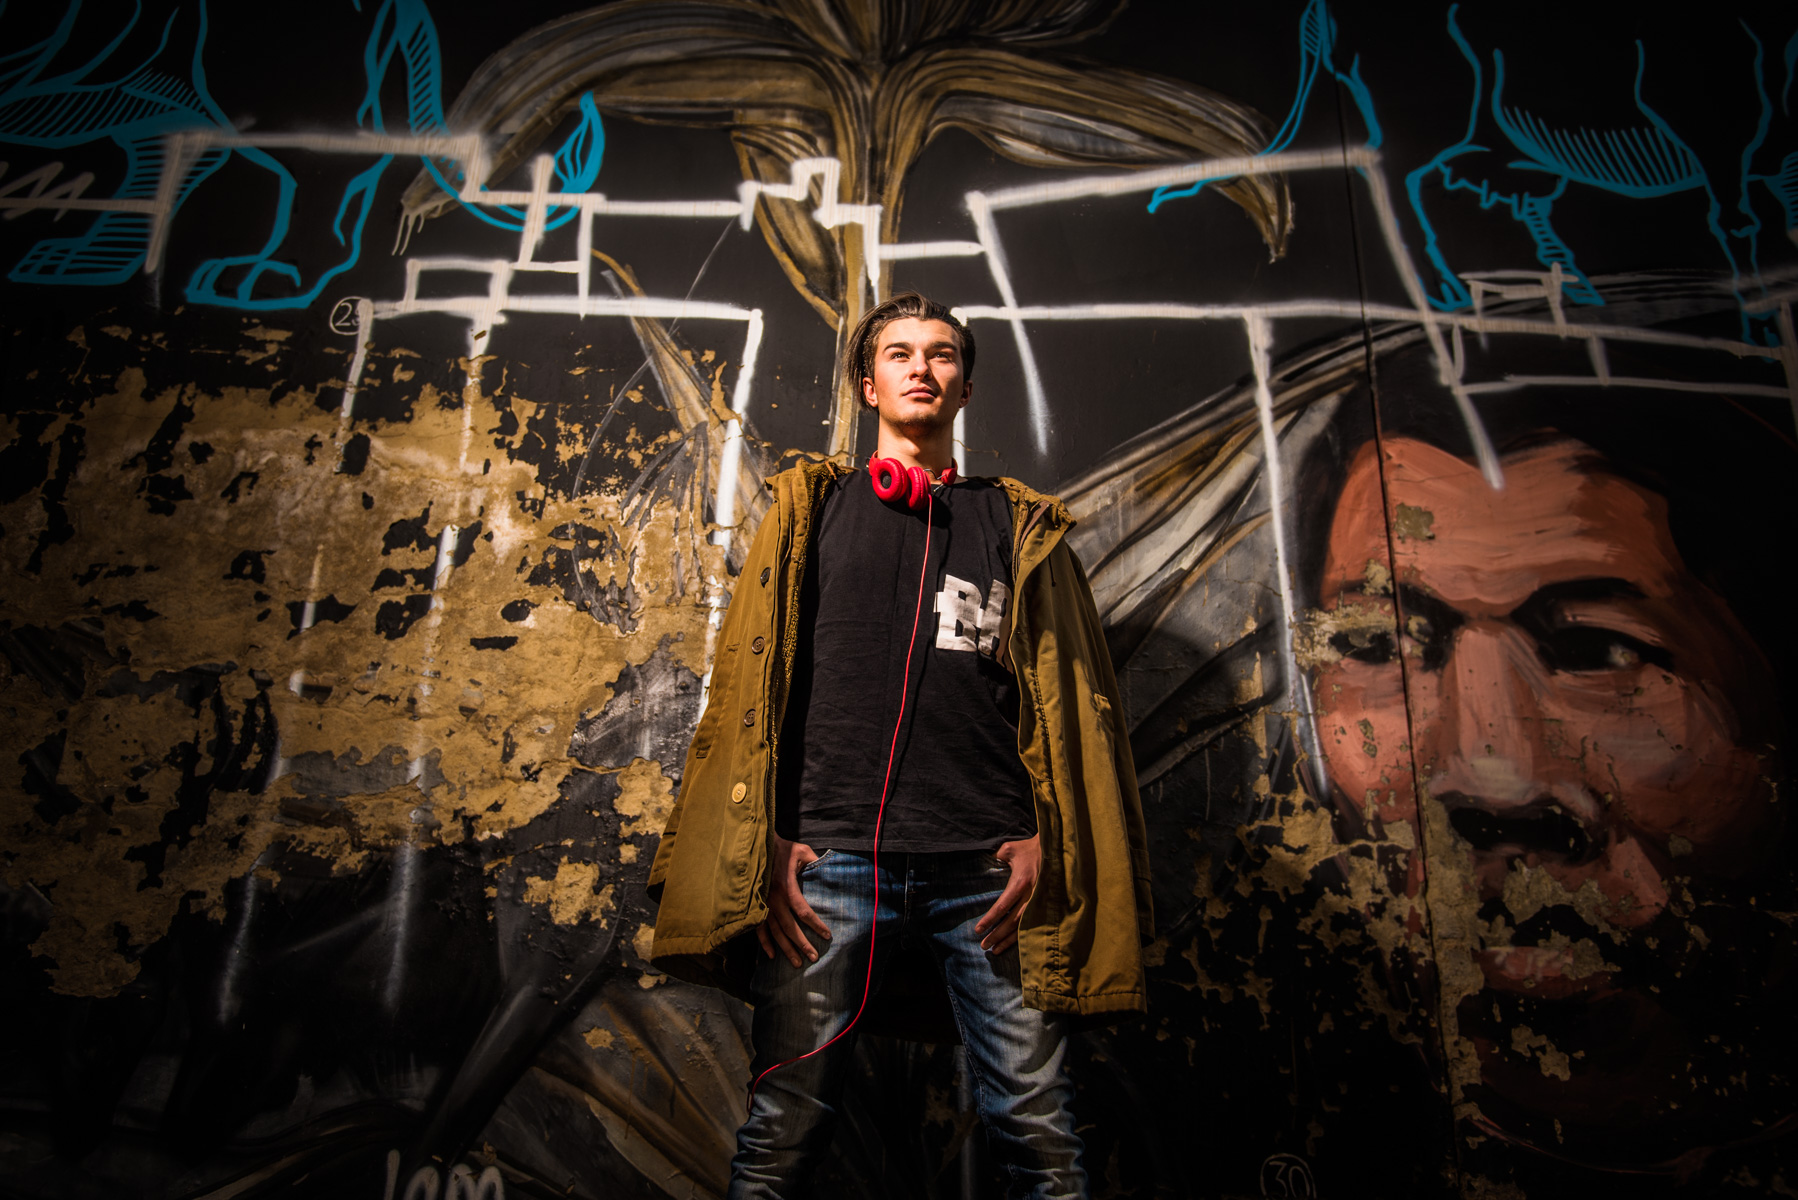 On-Location Model Shoot with Dylan Cade – Newtown, Johannesburg